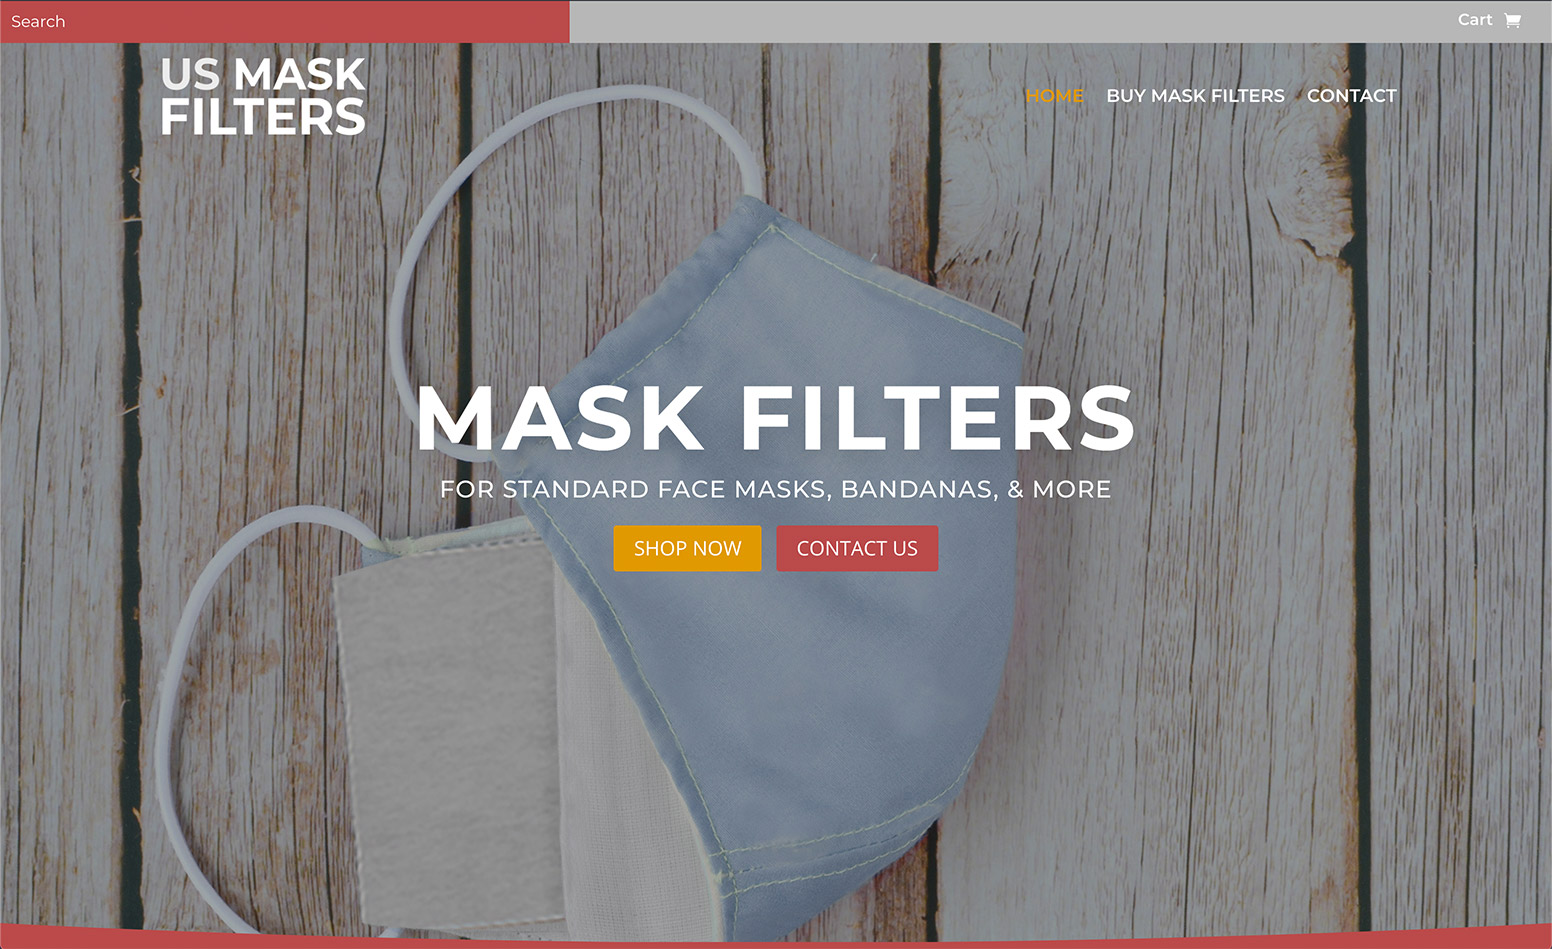 US Mask filters website, web design MA, web design CT, graphic design MA, branding MA, social media marketing